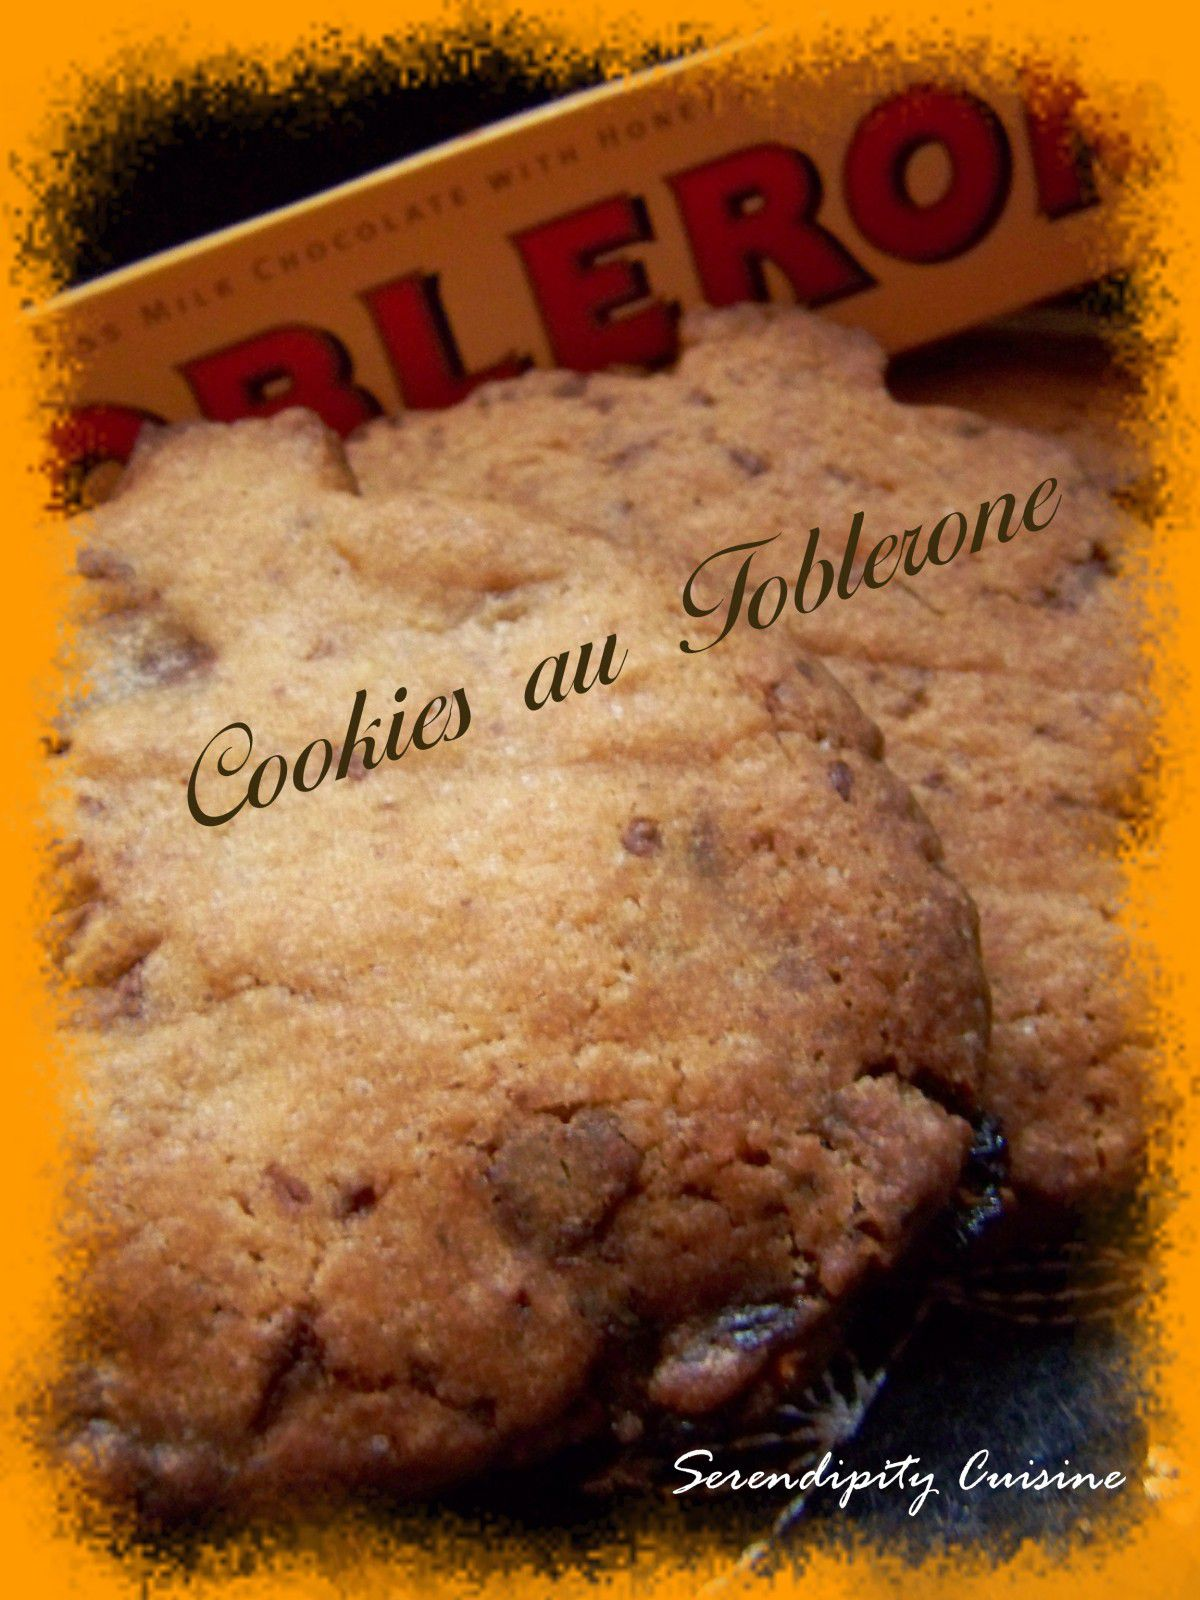 how to clear cache and cookies on iphone cookies au toblerone le de serendipity 20769